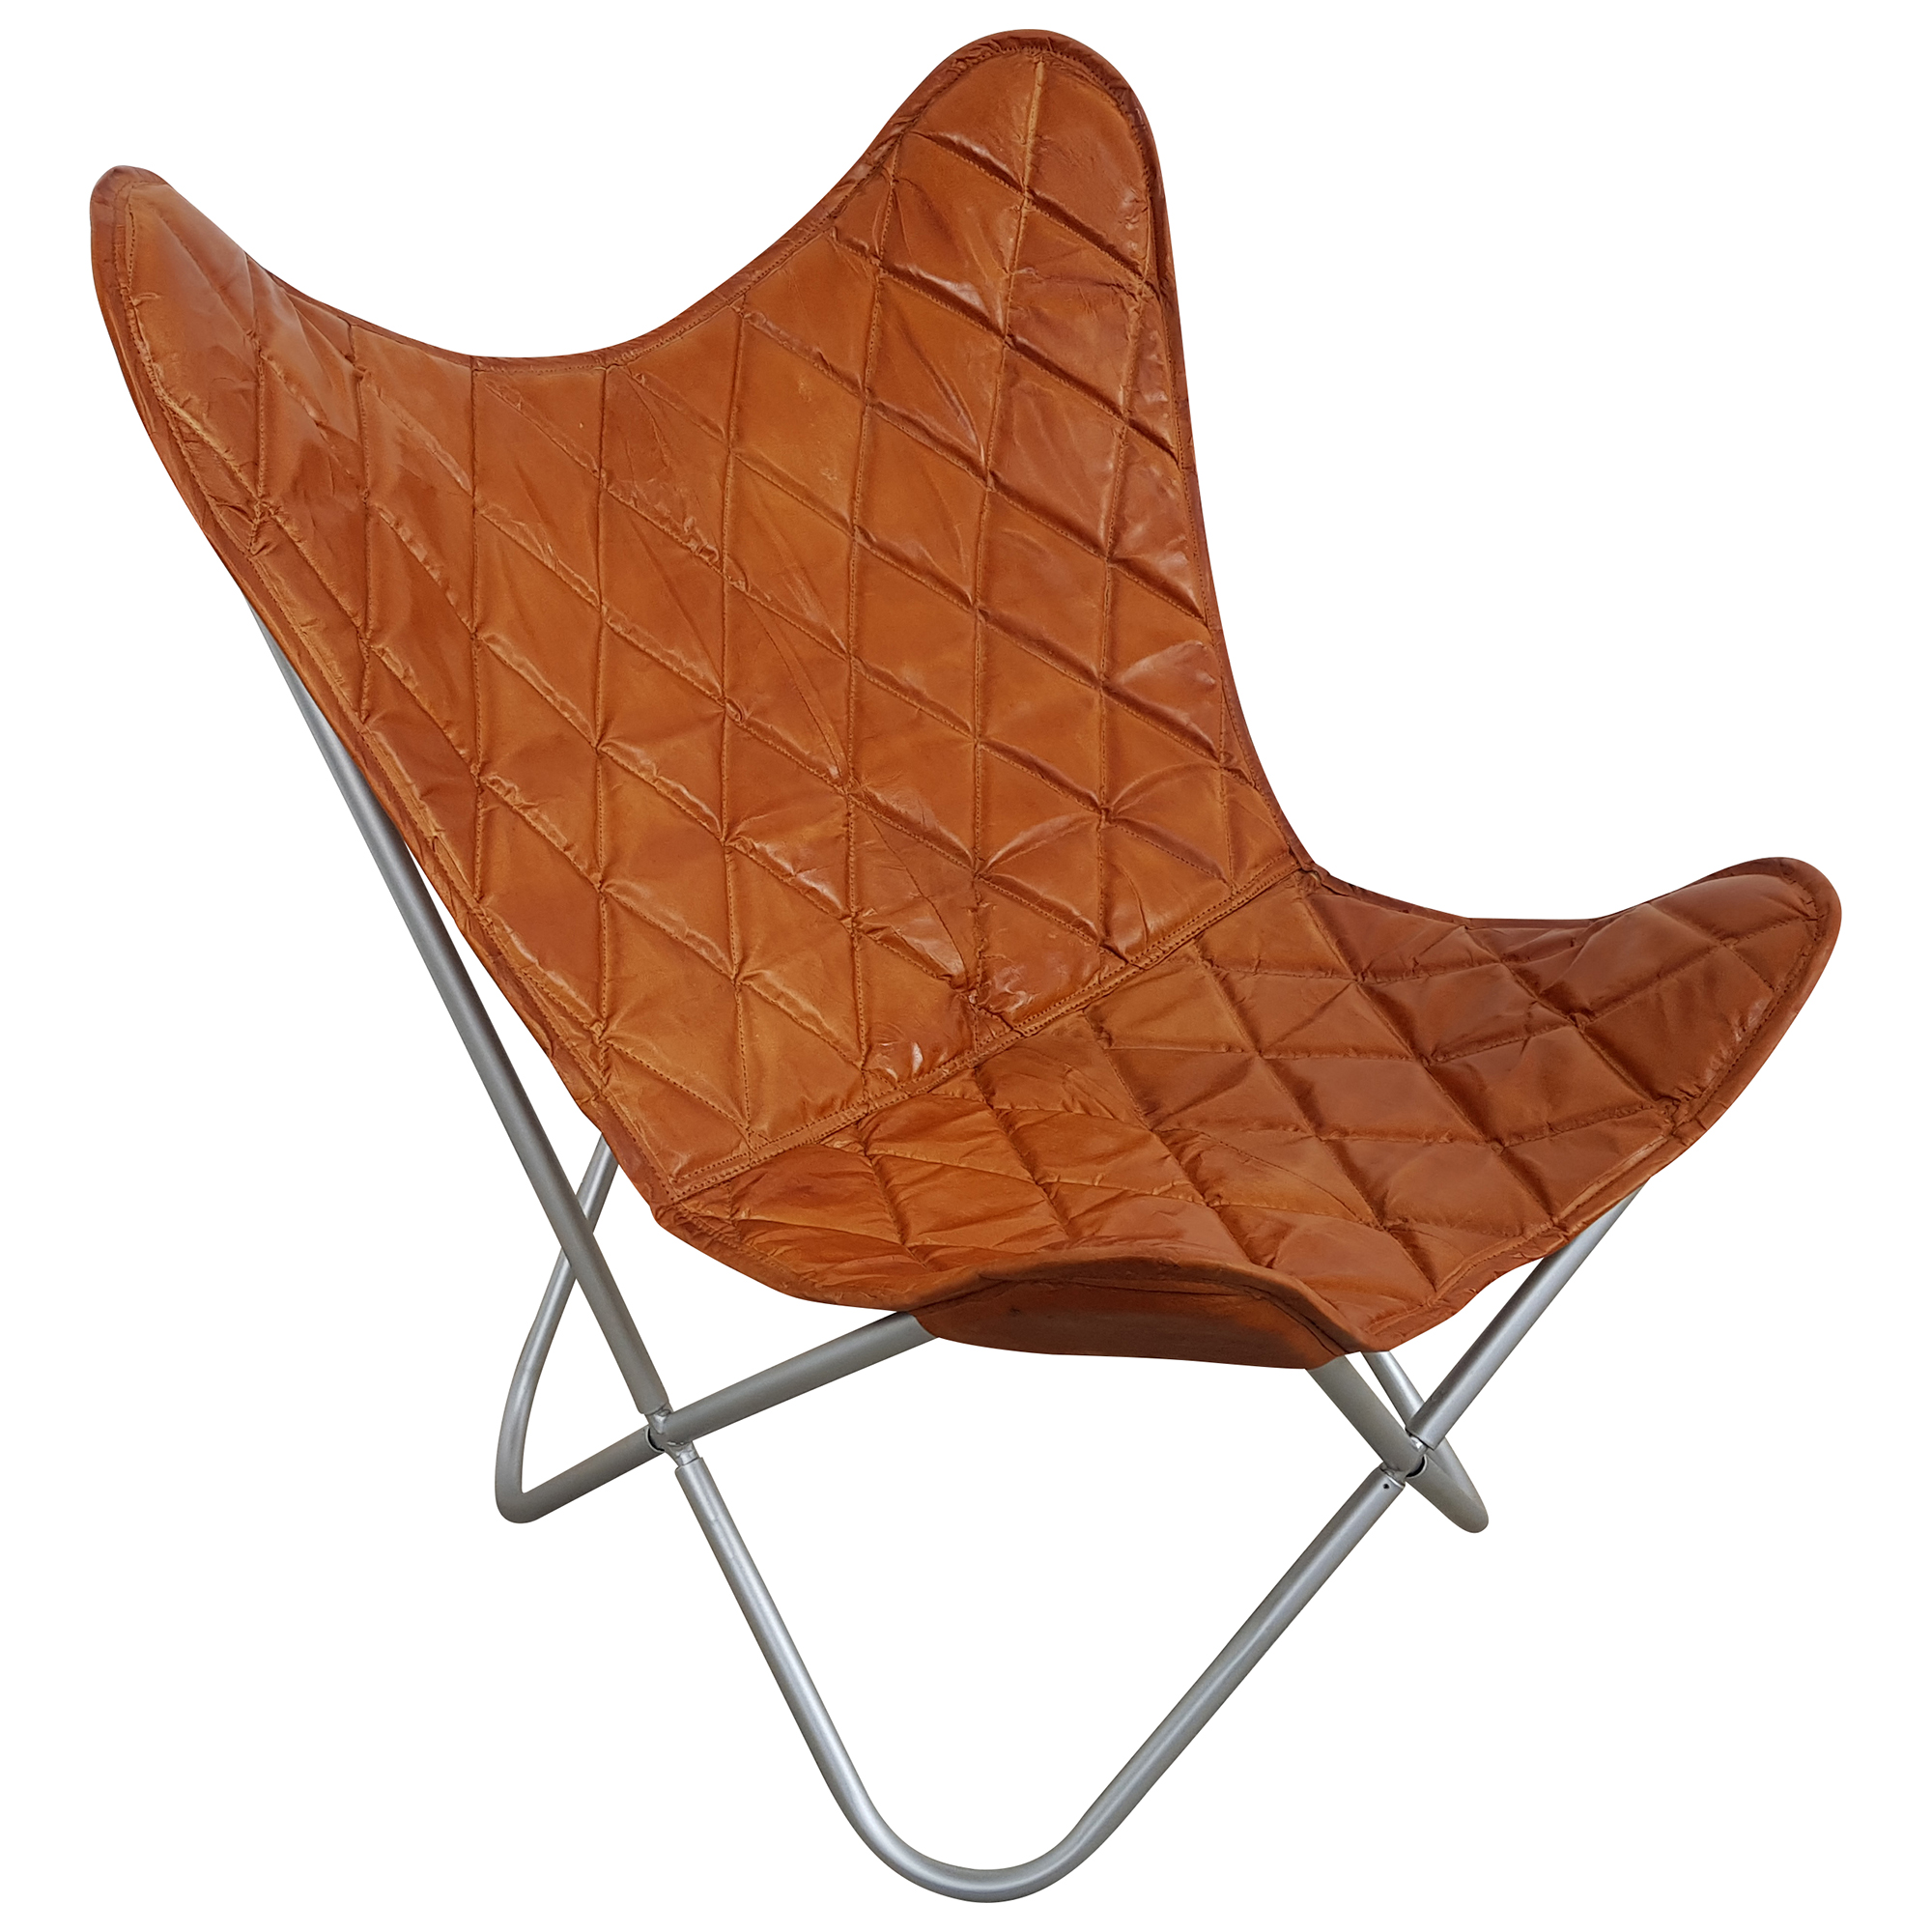 Lounge Sessel Retro Butterfly Chair Sessel Design Lounge Stuhl Leder Braun